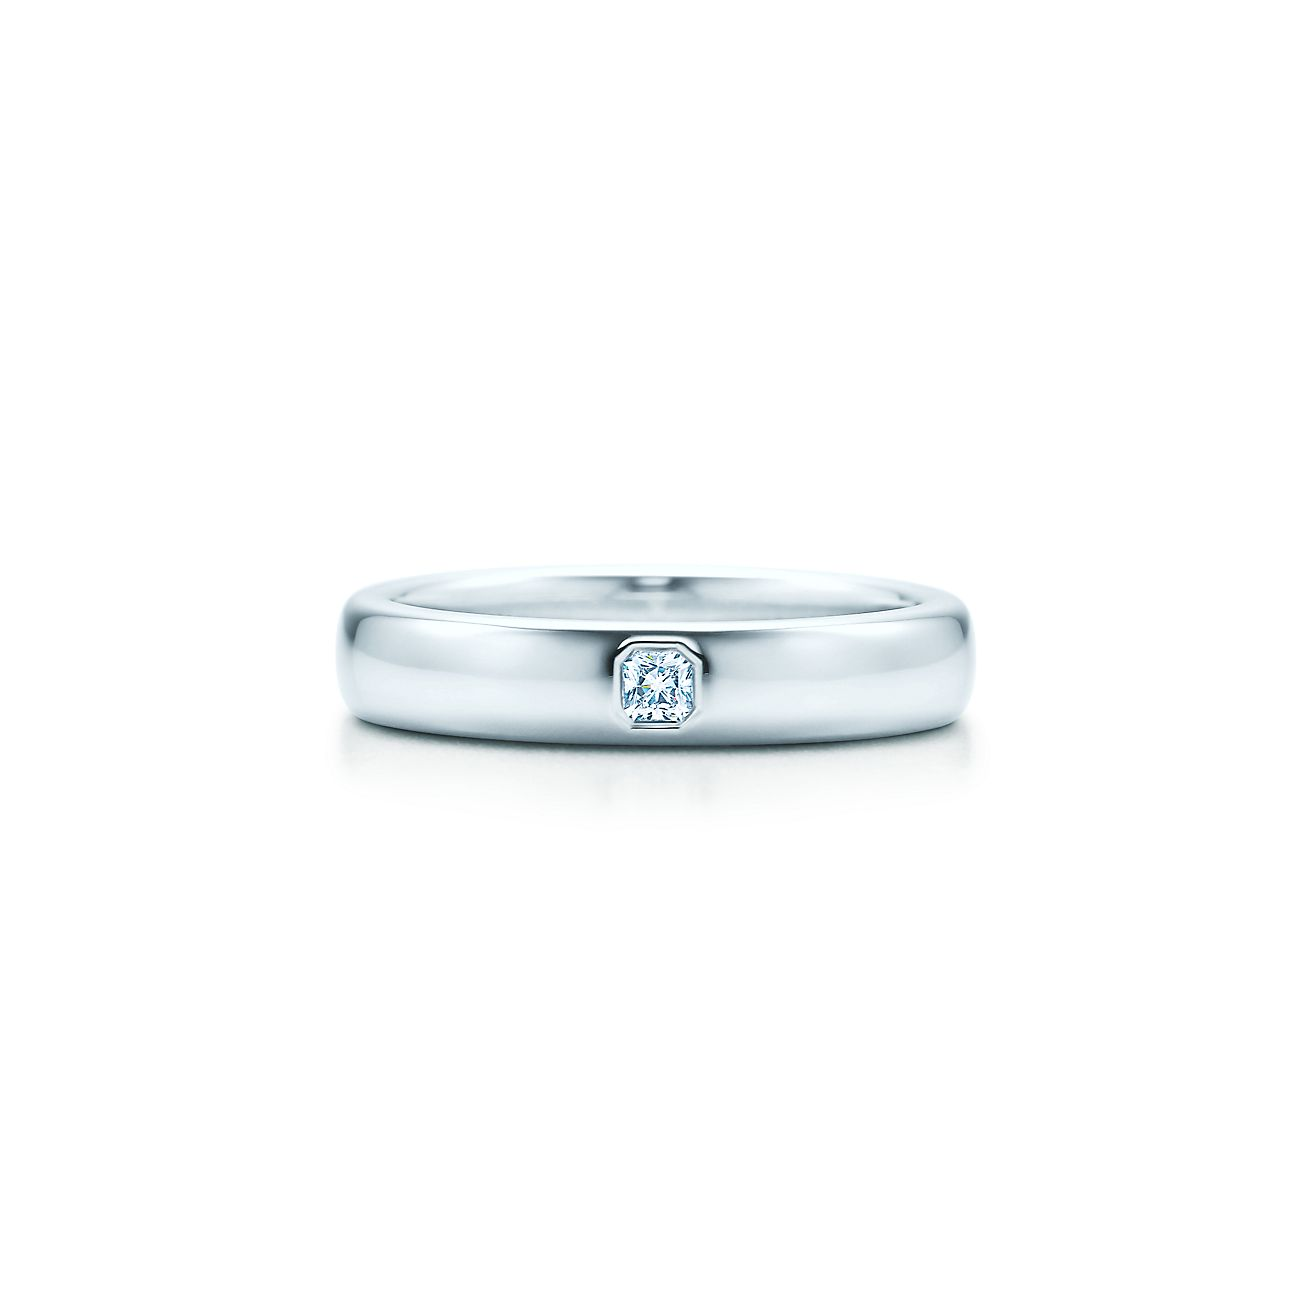 Tiffany ClassicTM Wedding Band Ring In Platinum With A Diamond 4 Mm Wide